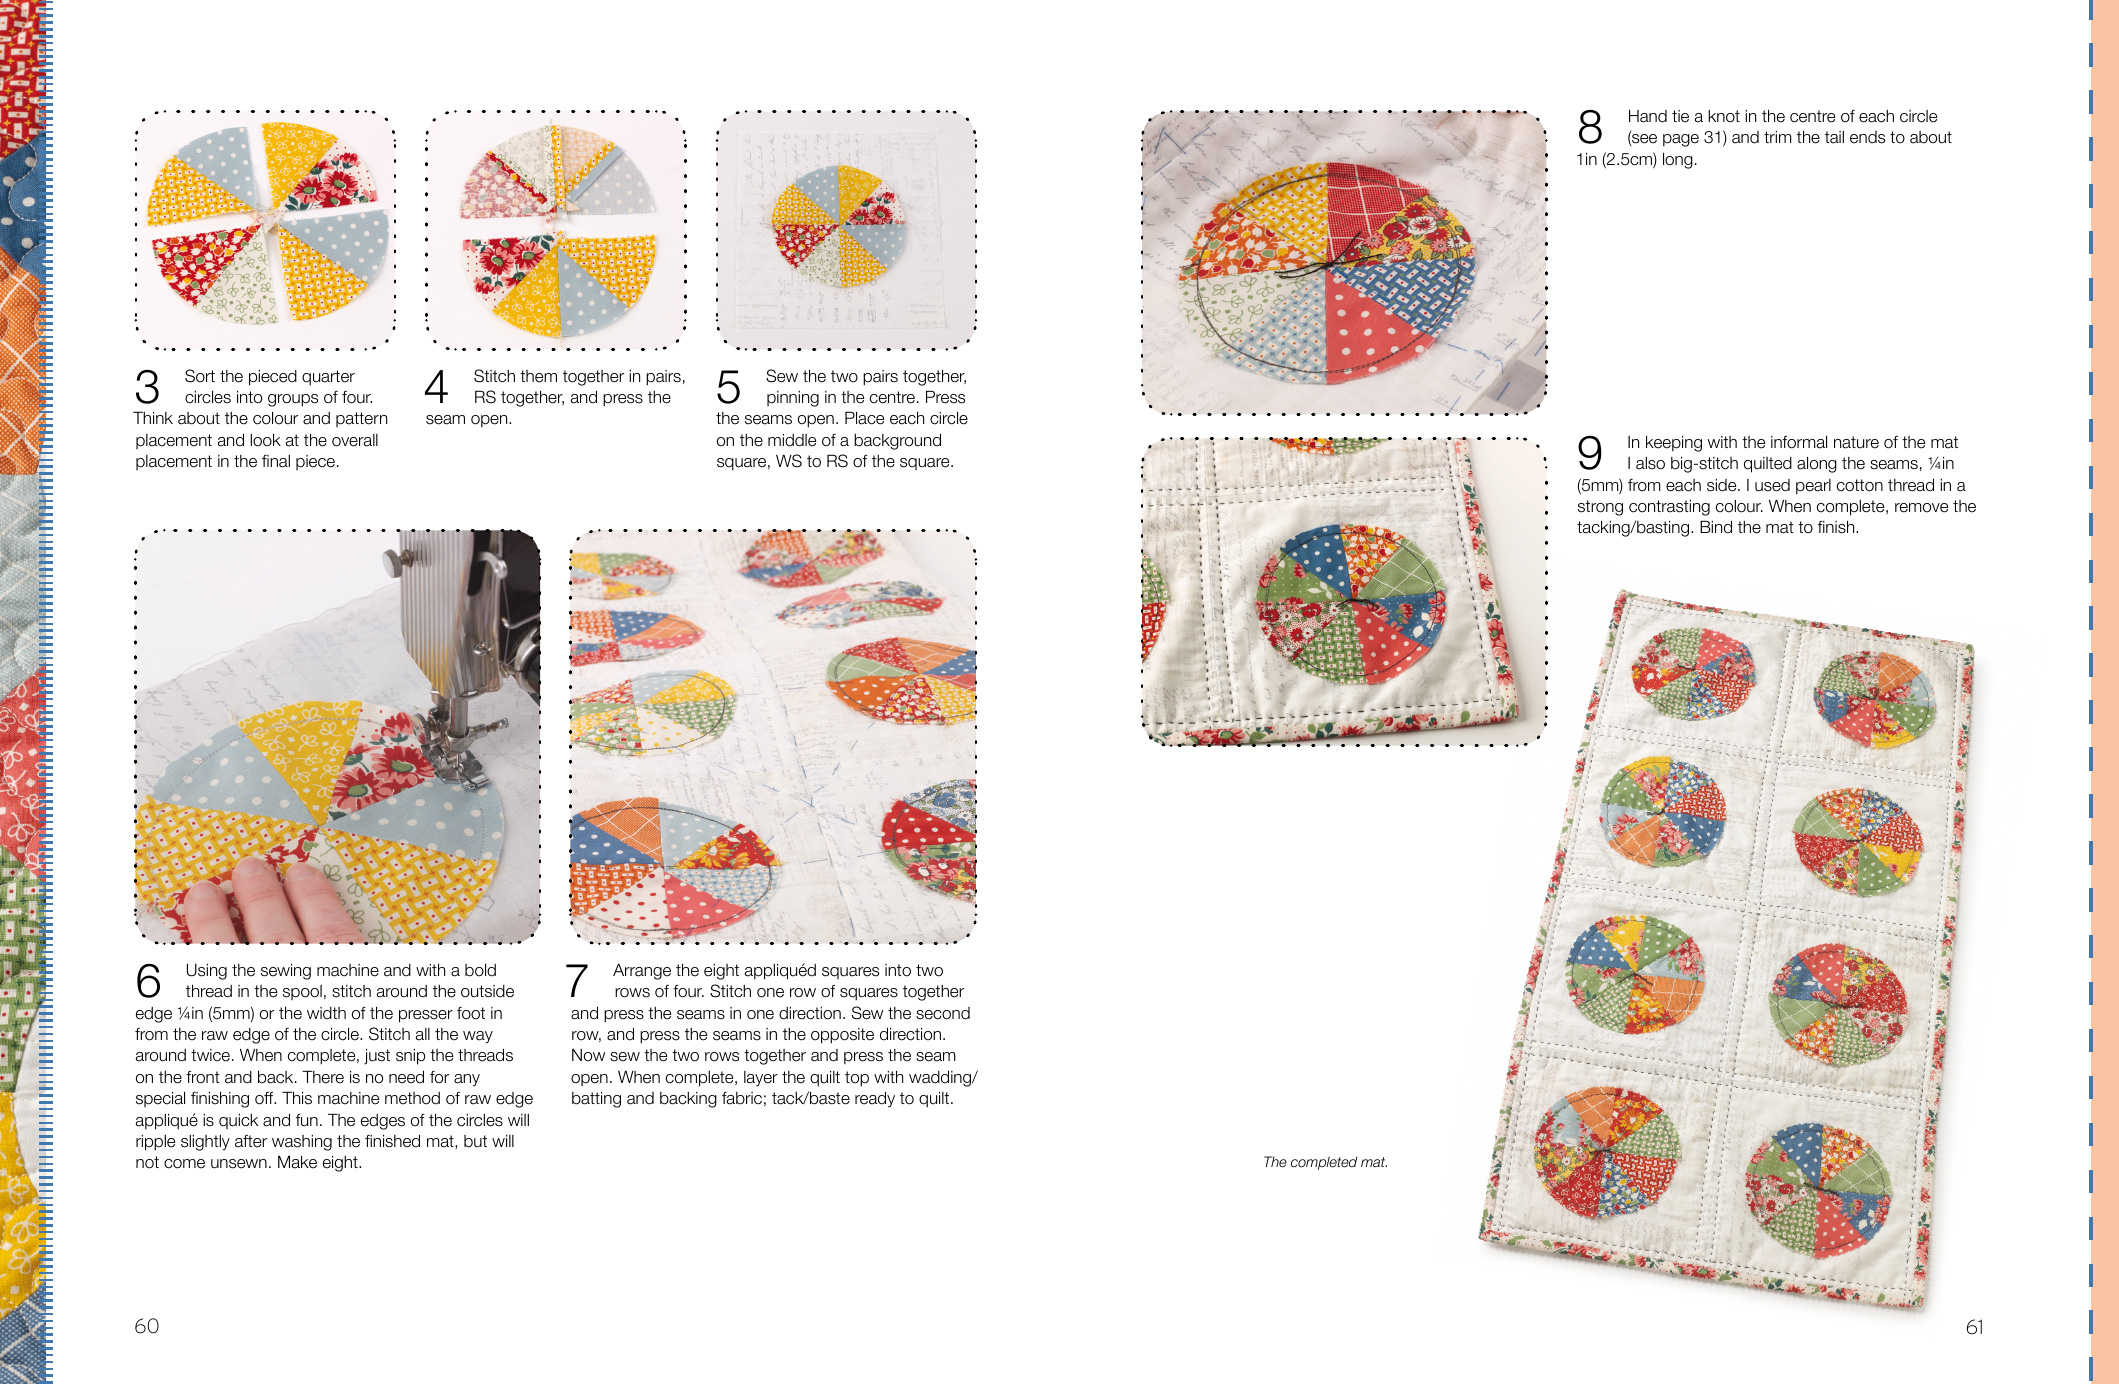 Sew-Layer-Cake-Quilts-and-Gifts-60-61